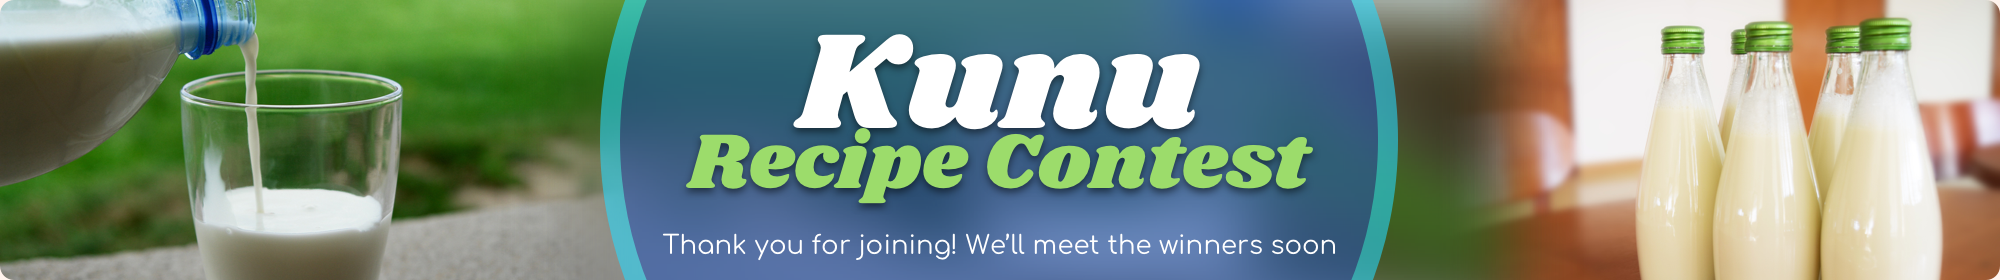 Kunu Recipe Contest